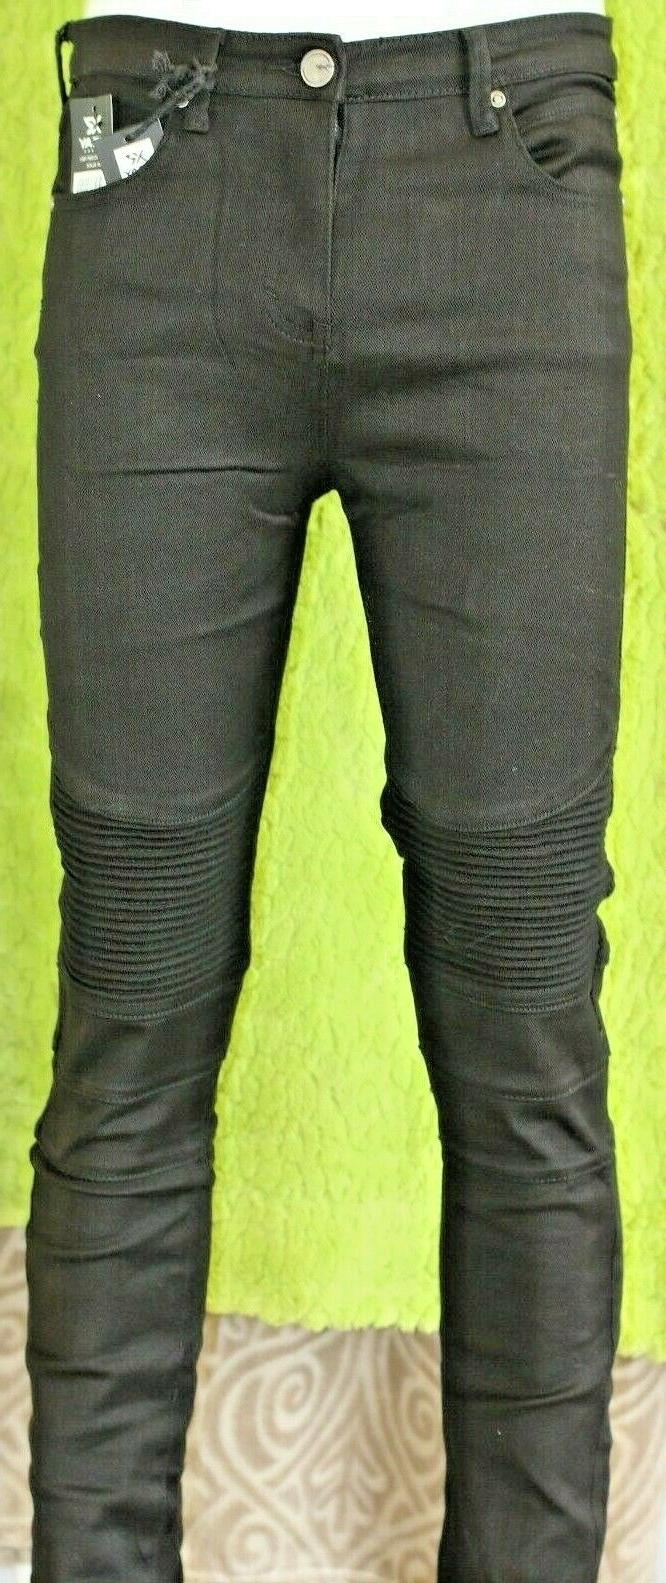 Black Jeans for Youth Boys Sizes 10 through 20 Suggested Ret